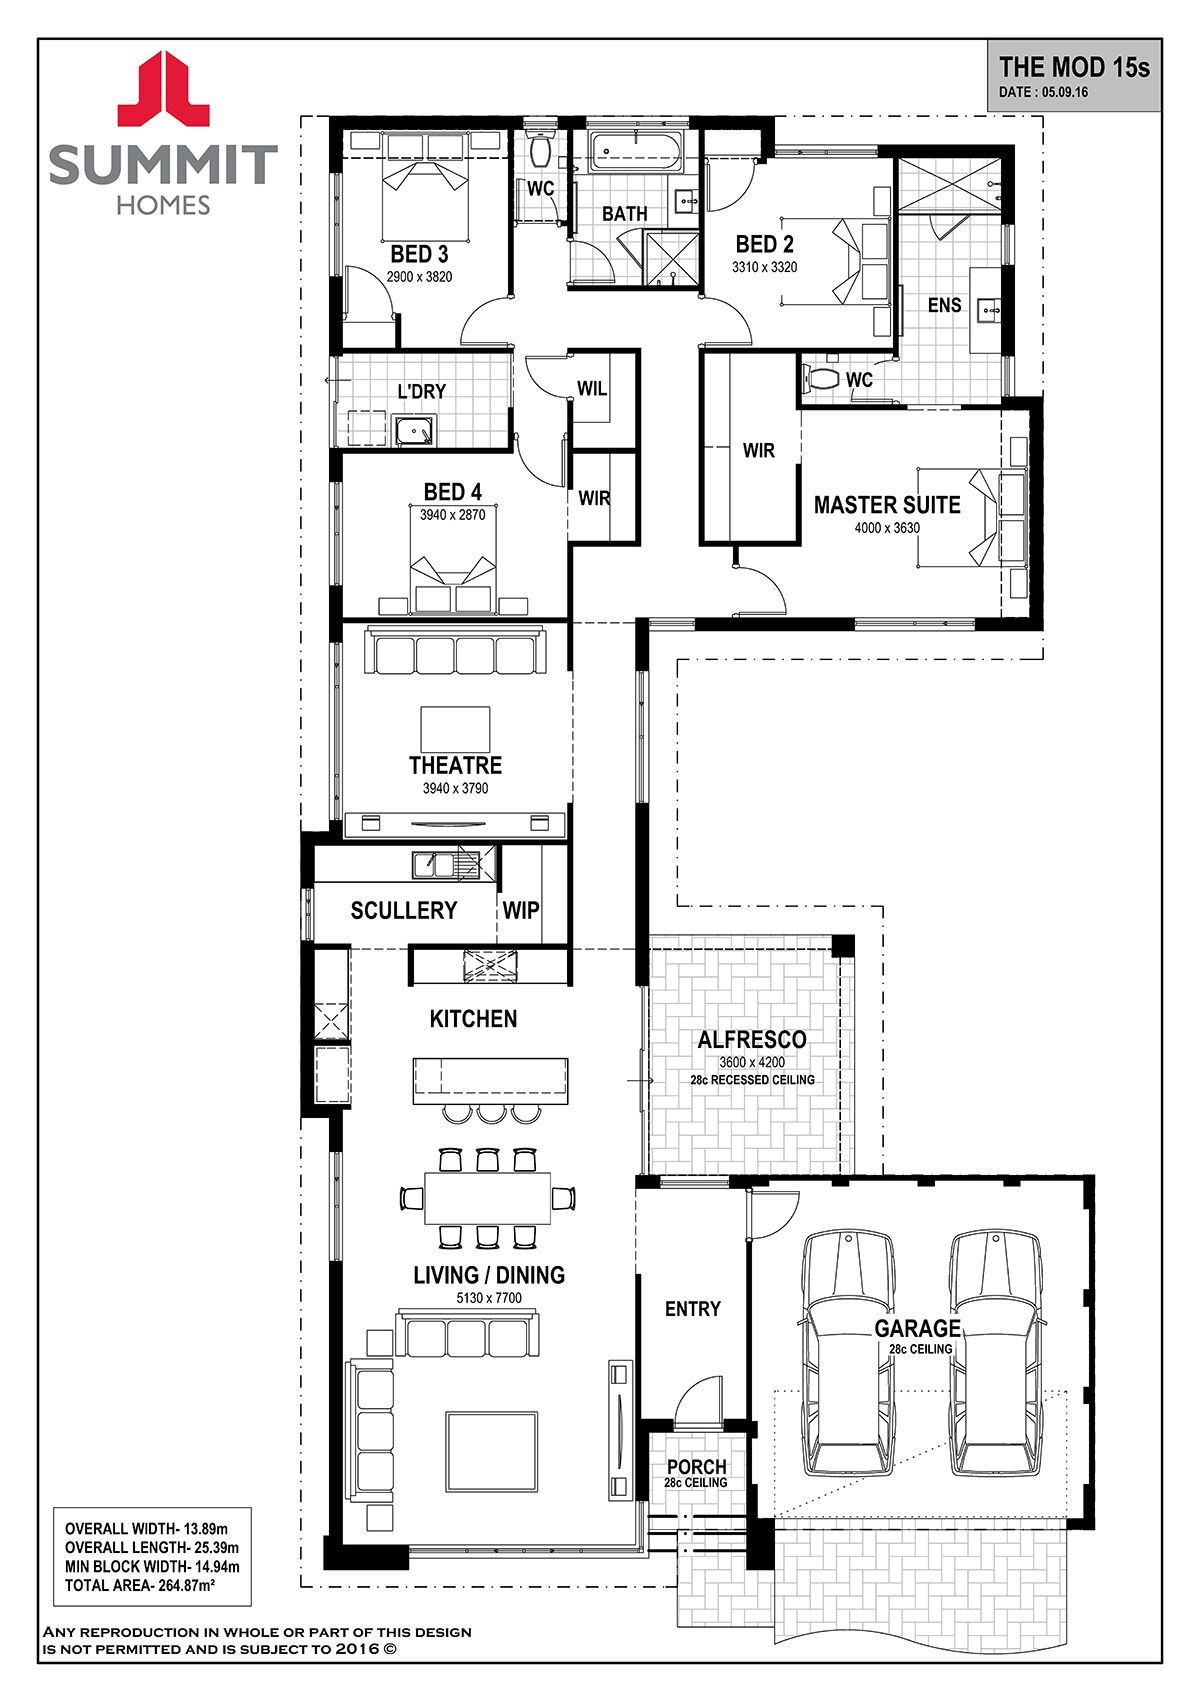 Floor Plan Friday Living On The Front Bedrooms On The Back House Floor Plans Home Design Floor Plans Floor Plans